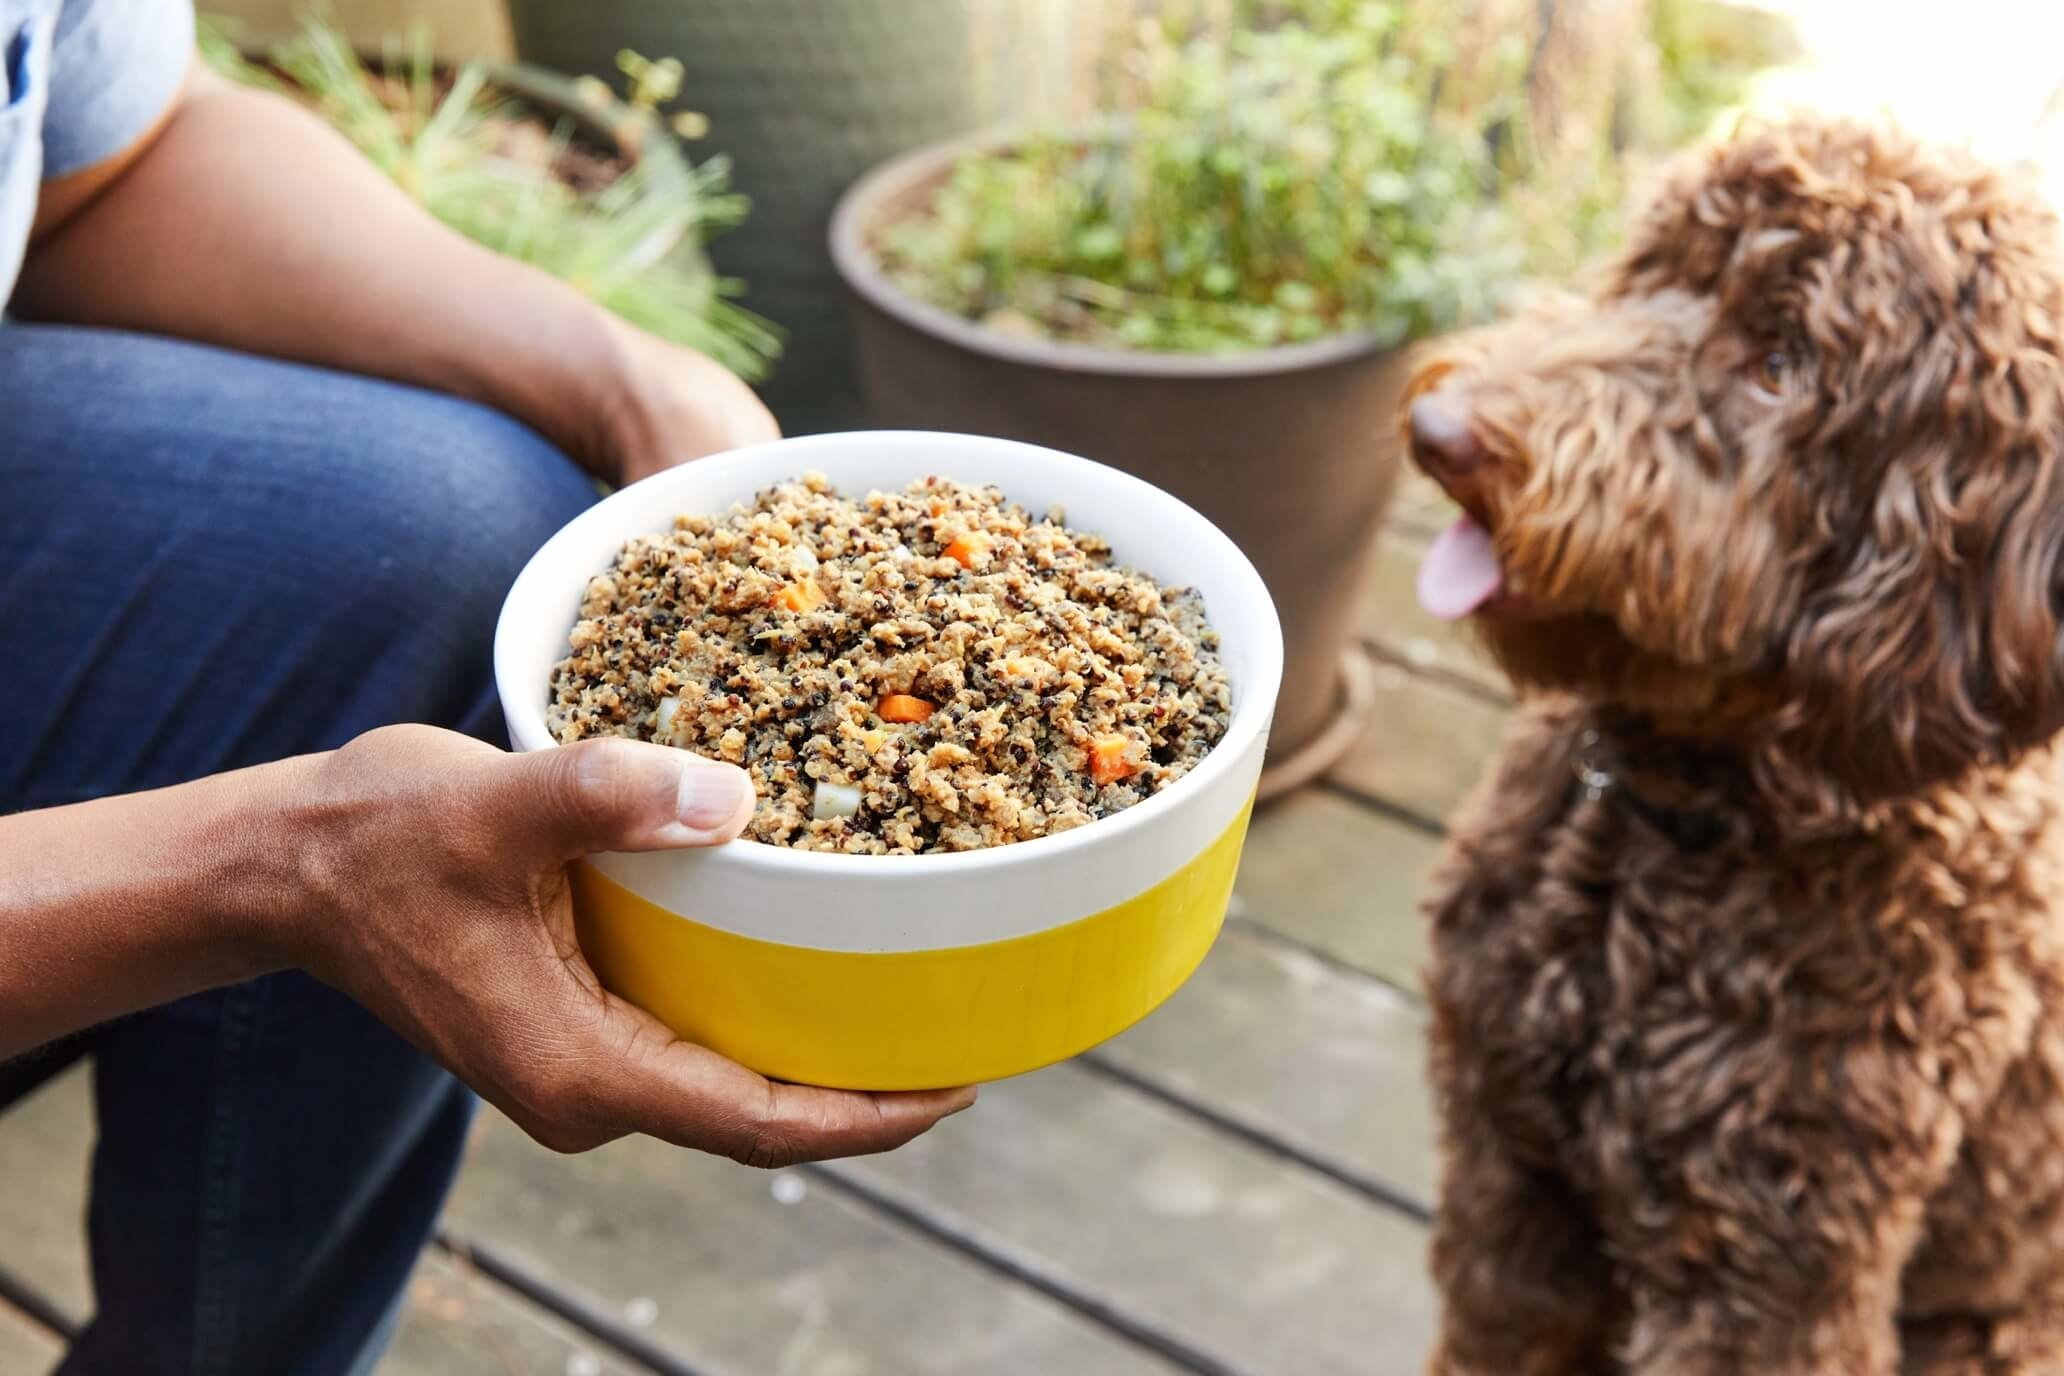 Hand holding a bowl of dog food in front of a hungry looking dog